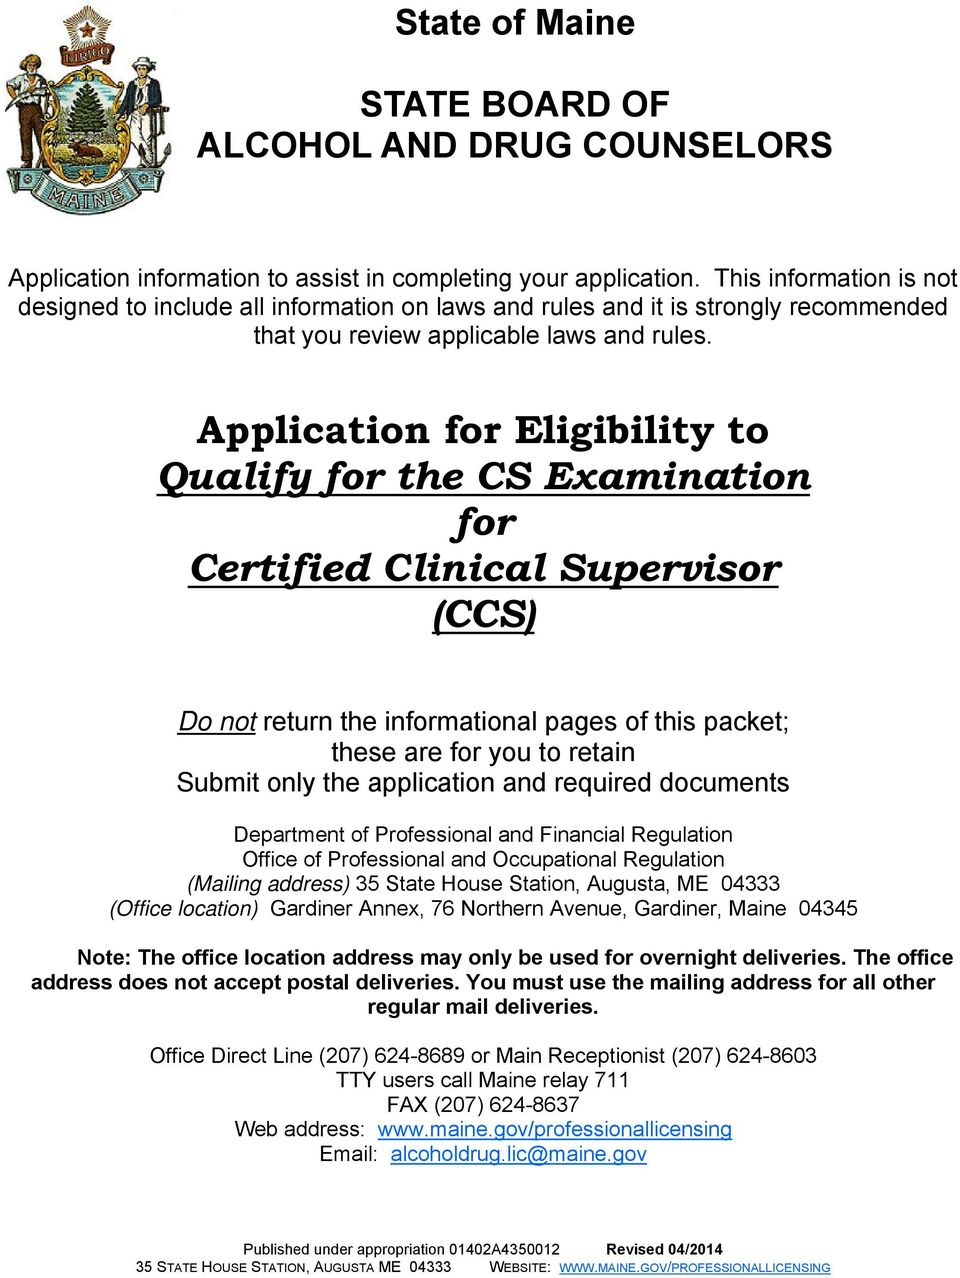 Application for Eligibility to Qualify for the CS Examination for Certified Clinical Supervisor (CCS) Do not return the informational pages of this packet; these are for you to retain Submit only the